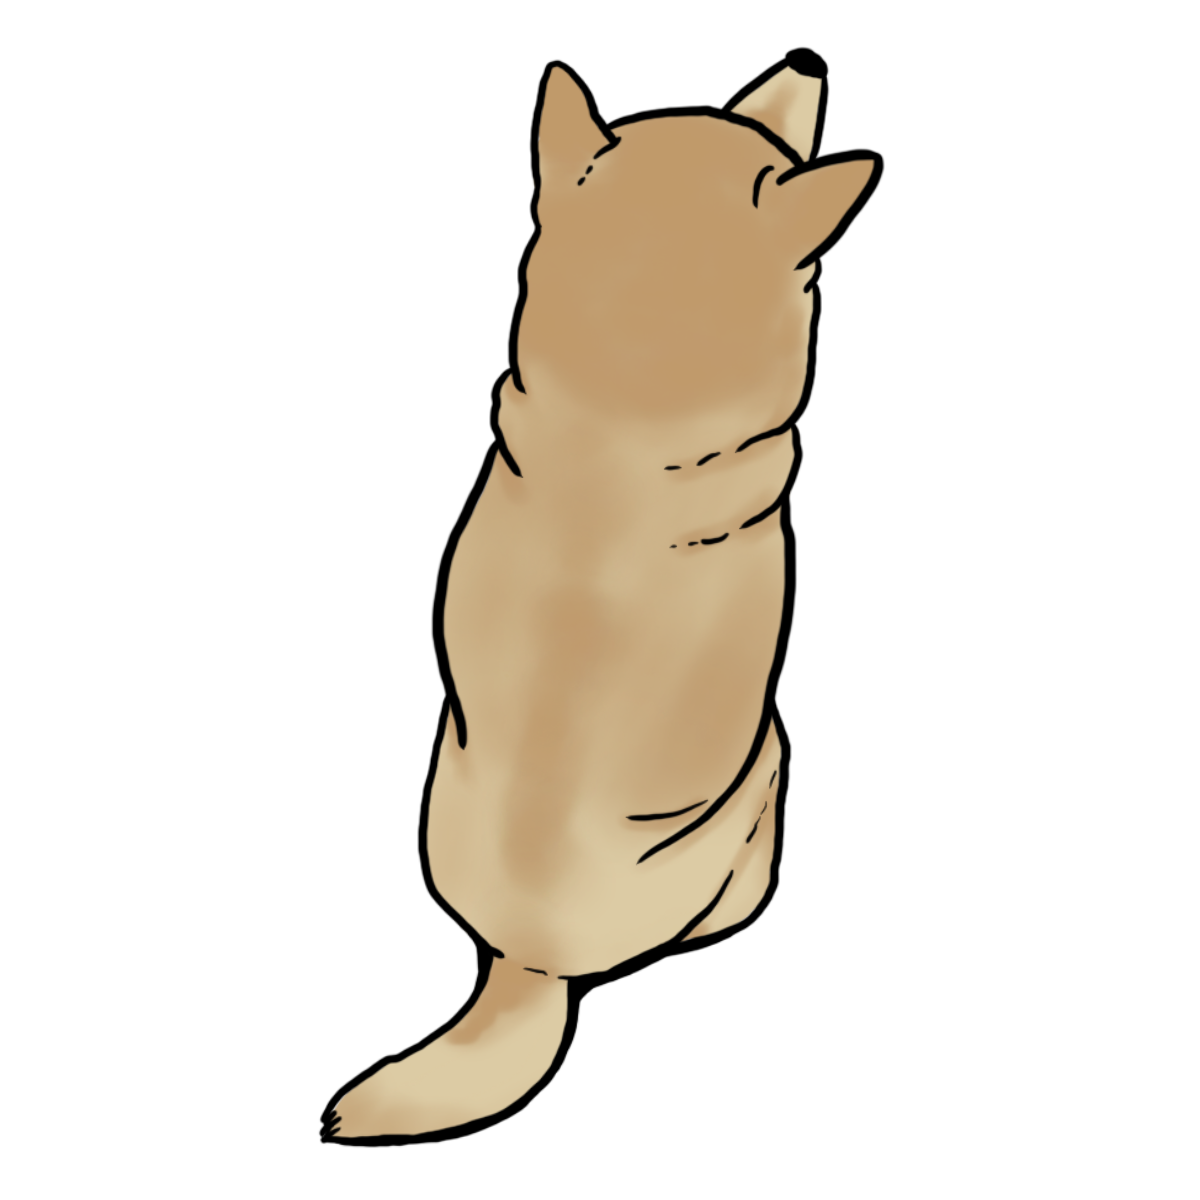 dog back view drawing